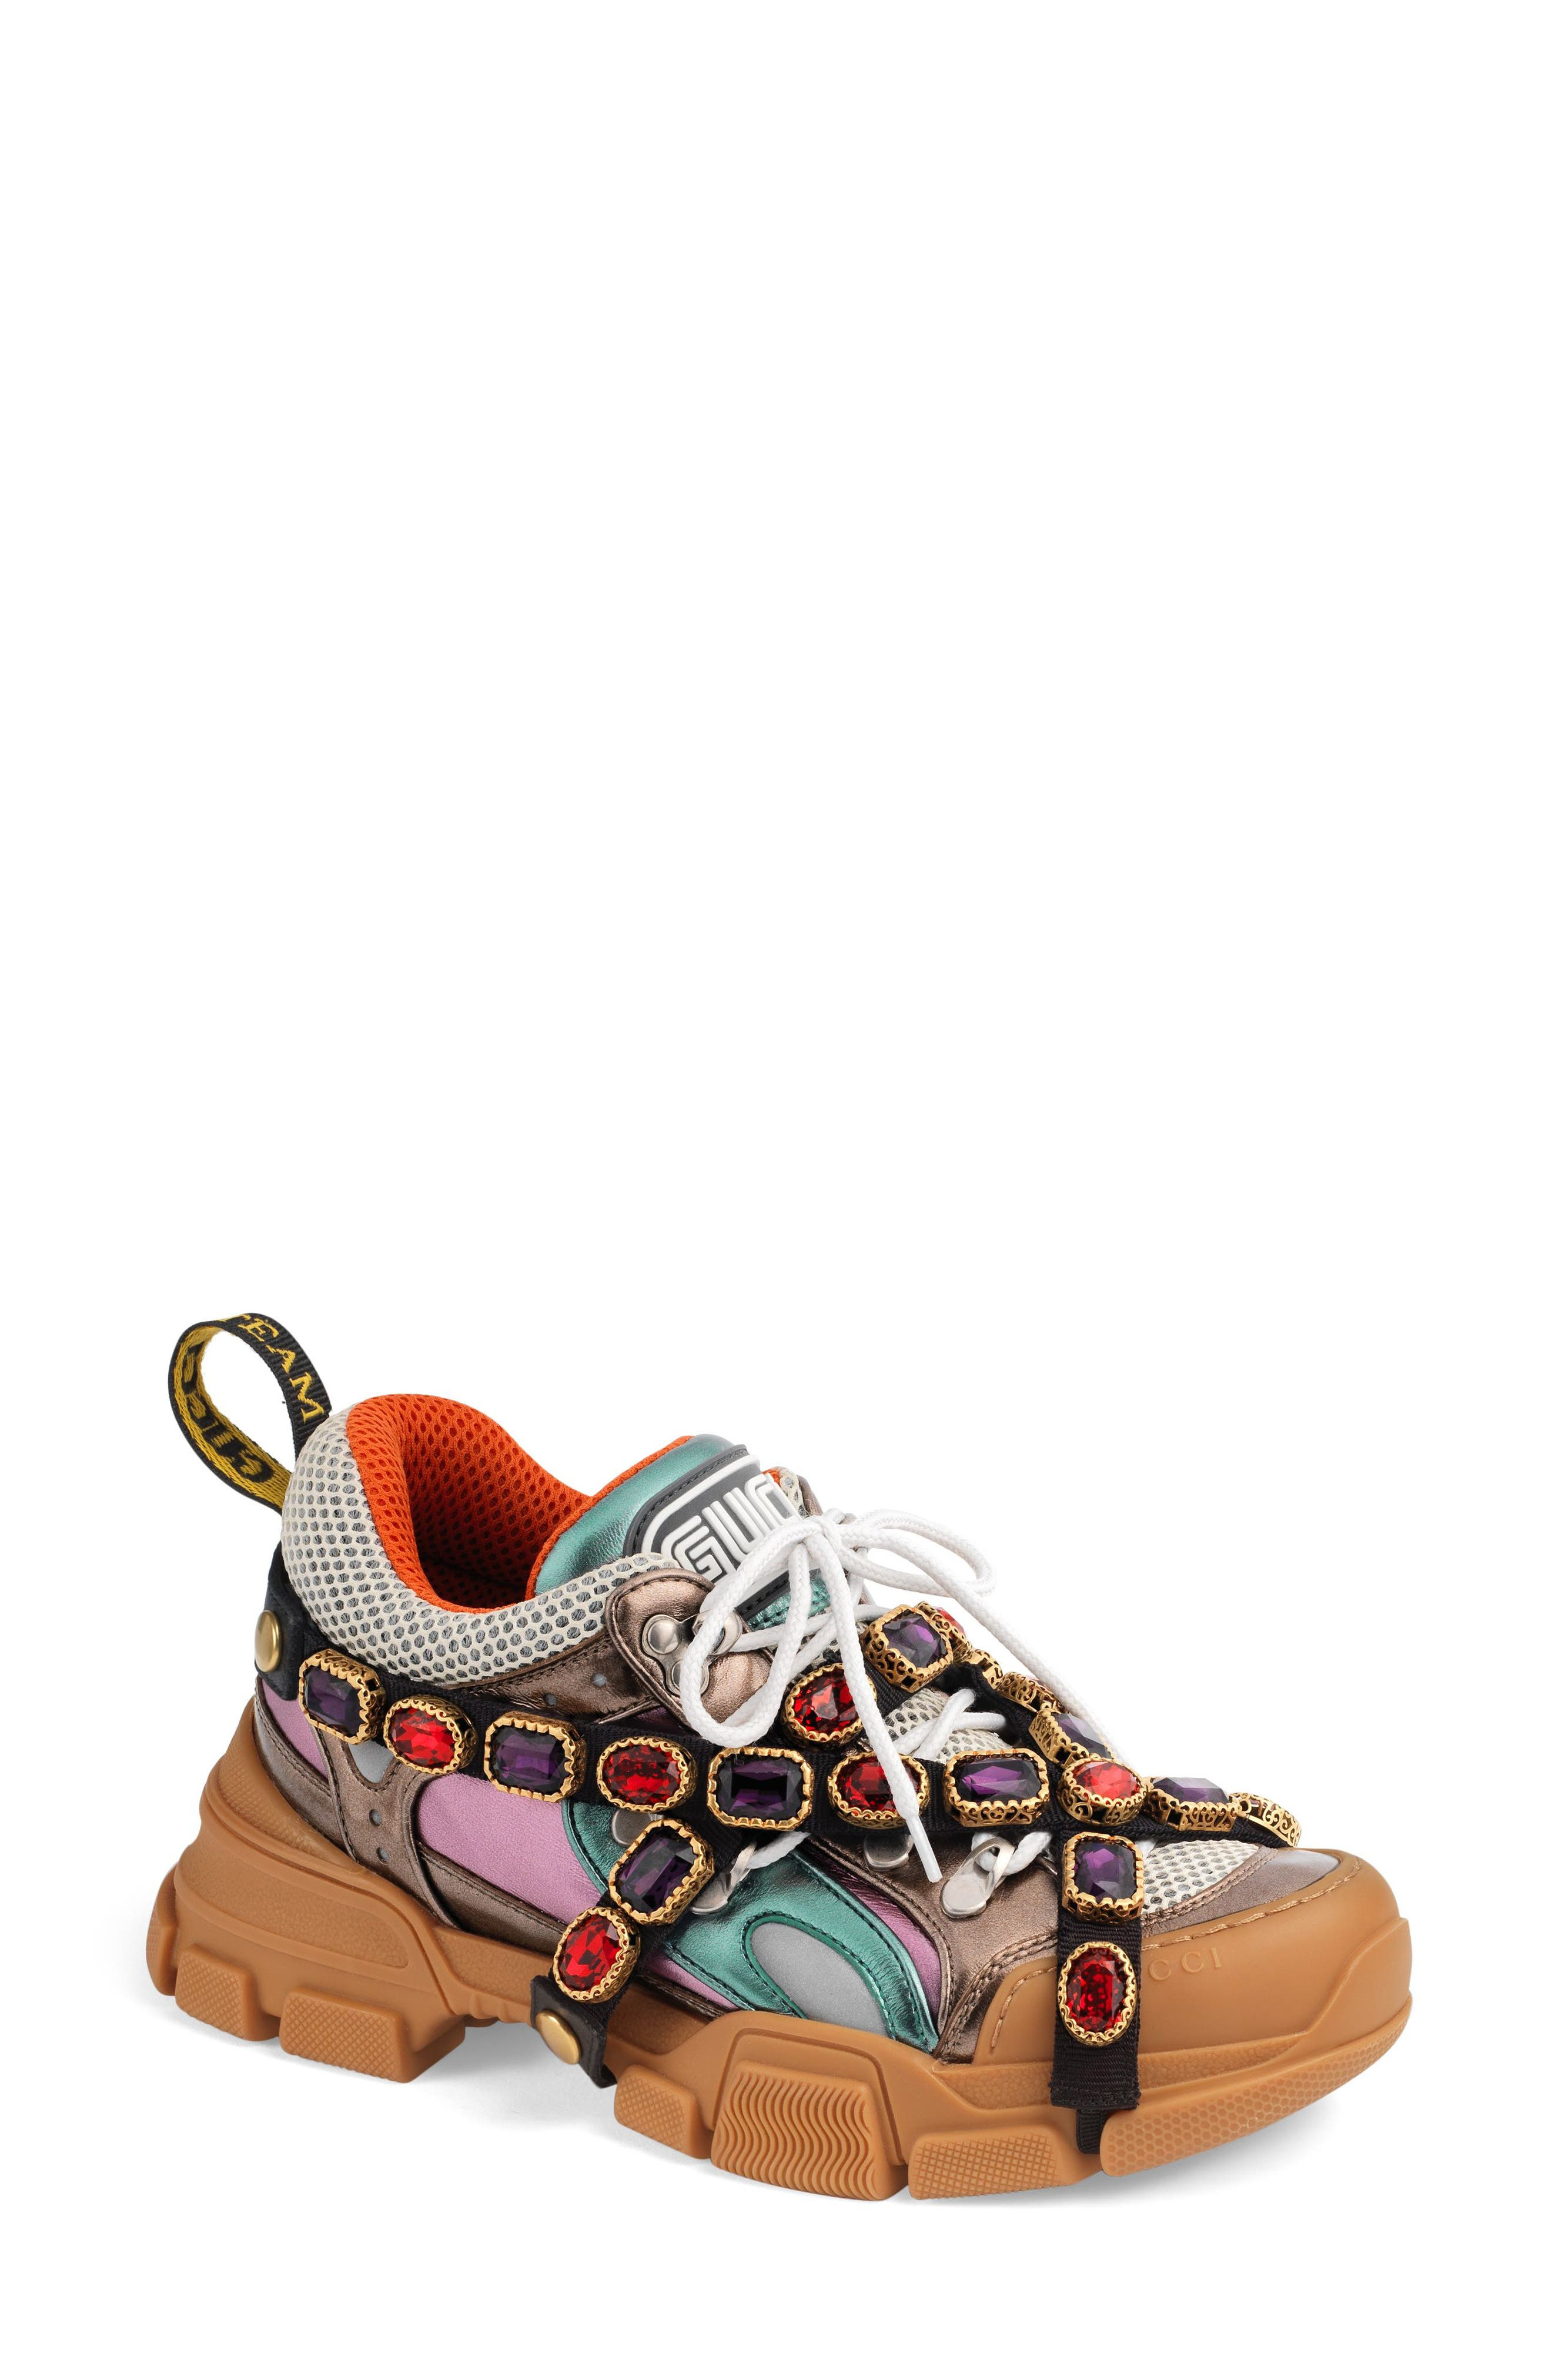 GUCCI, Flashtrek Jewel Embellished Sneaker, Main thumbnail 1, color, BROWN/ BLUE/ RED